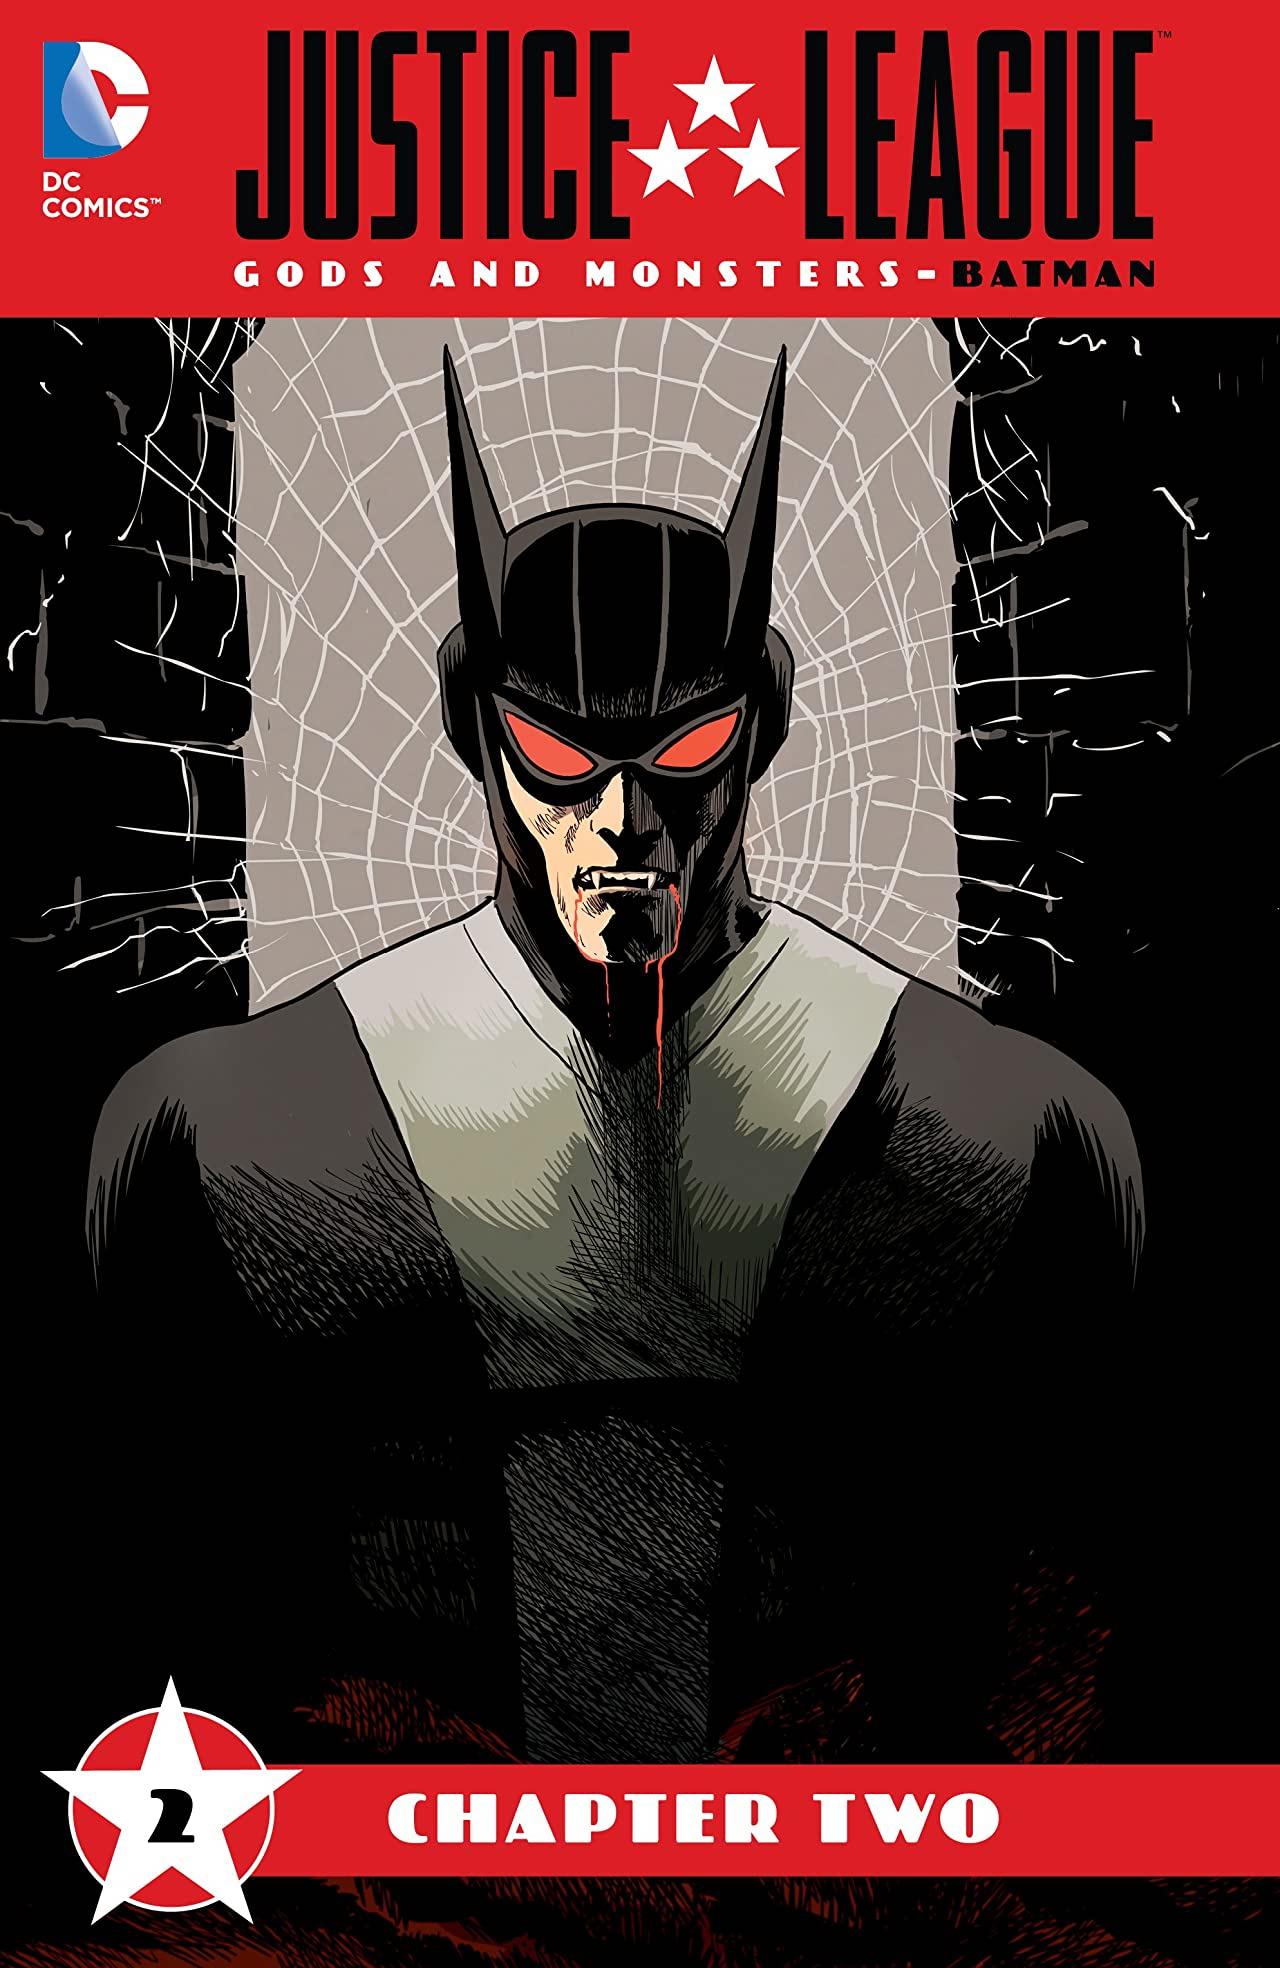 Justice League: Gods & Monsters - Batman (2015-) #2